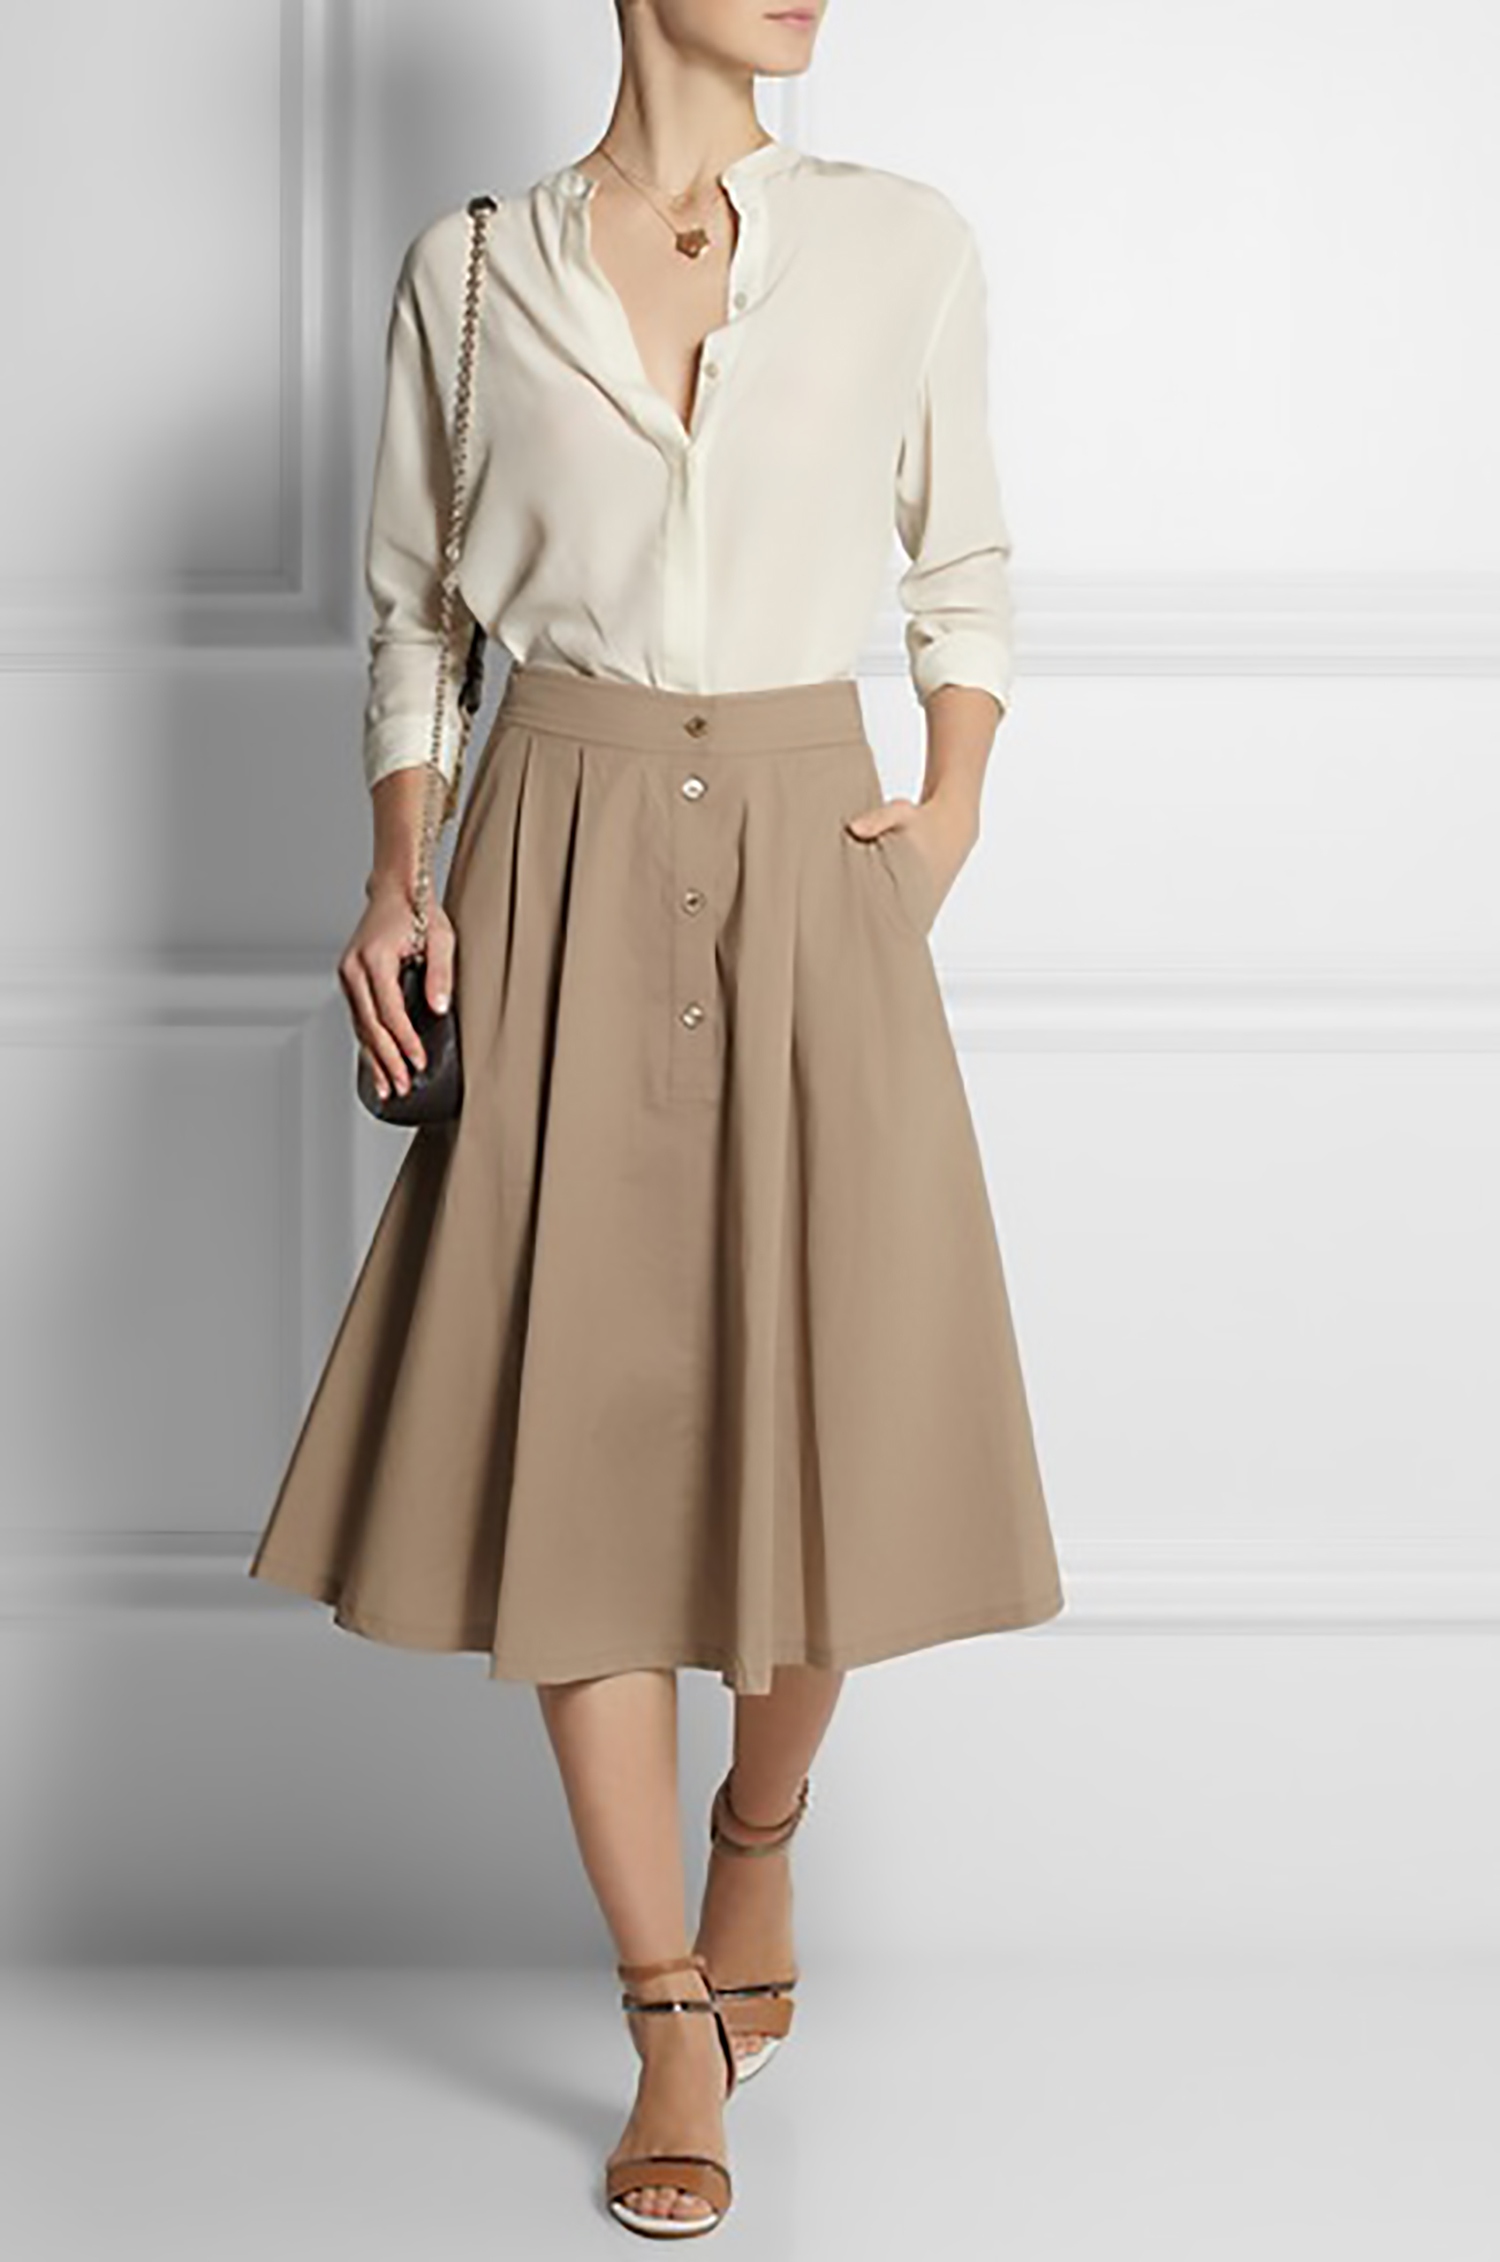 Le Meilleur The Work Look — Midi Skirts At Work Ce Mois Ci